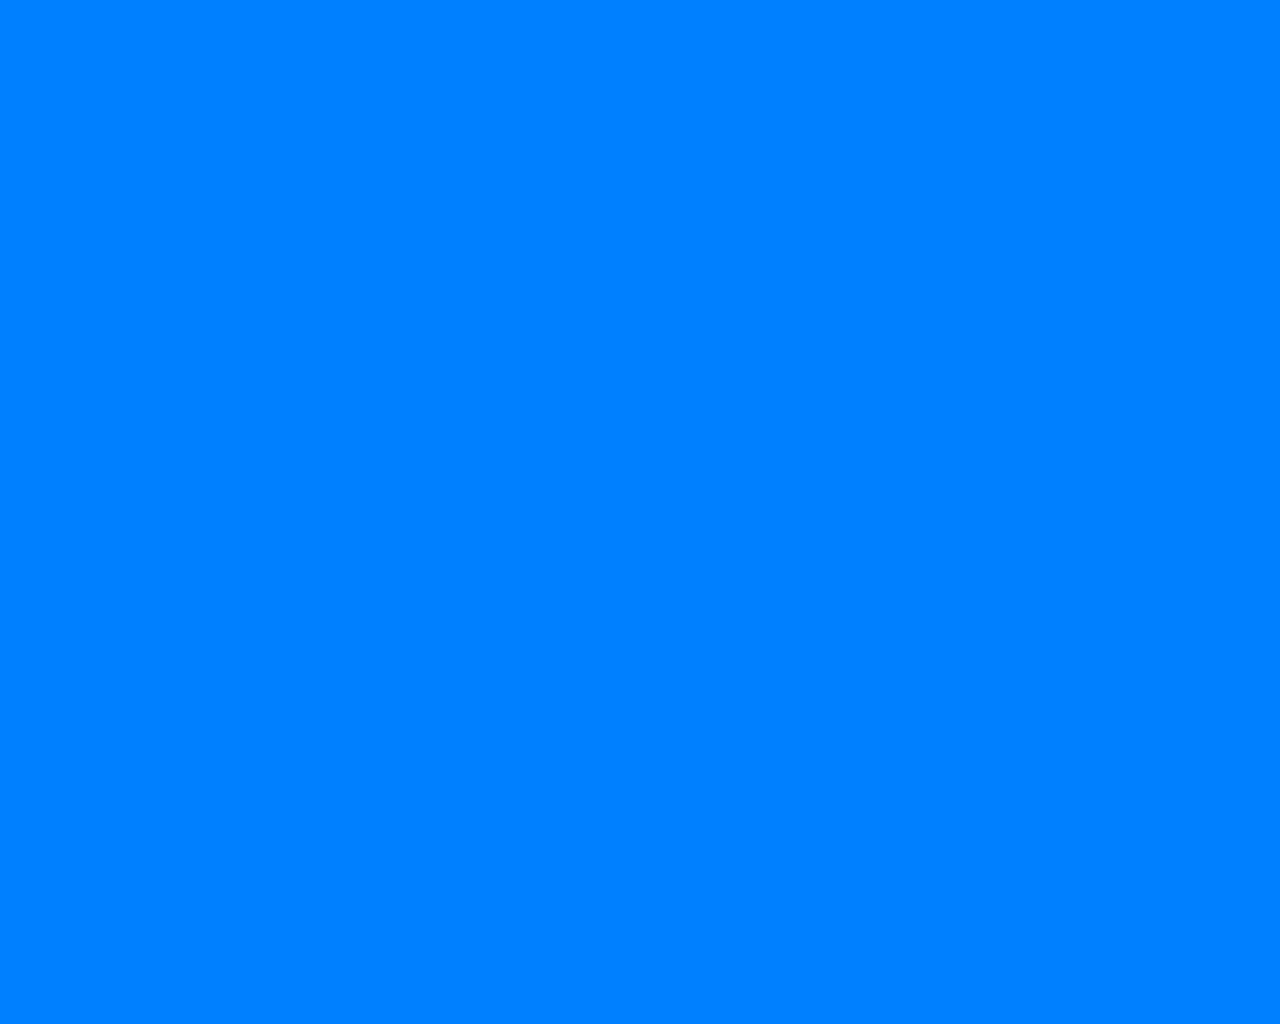 1280x1024 Azure Solid Color Background